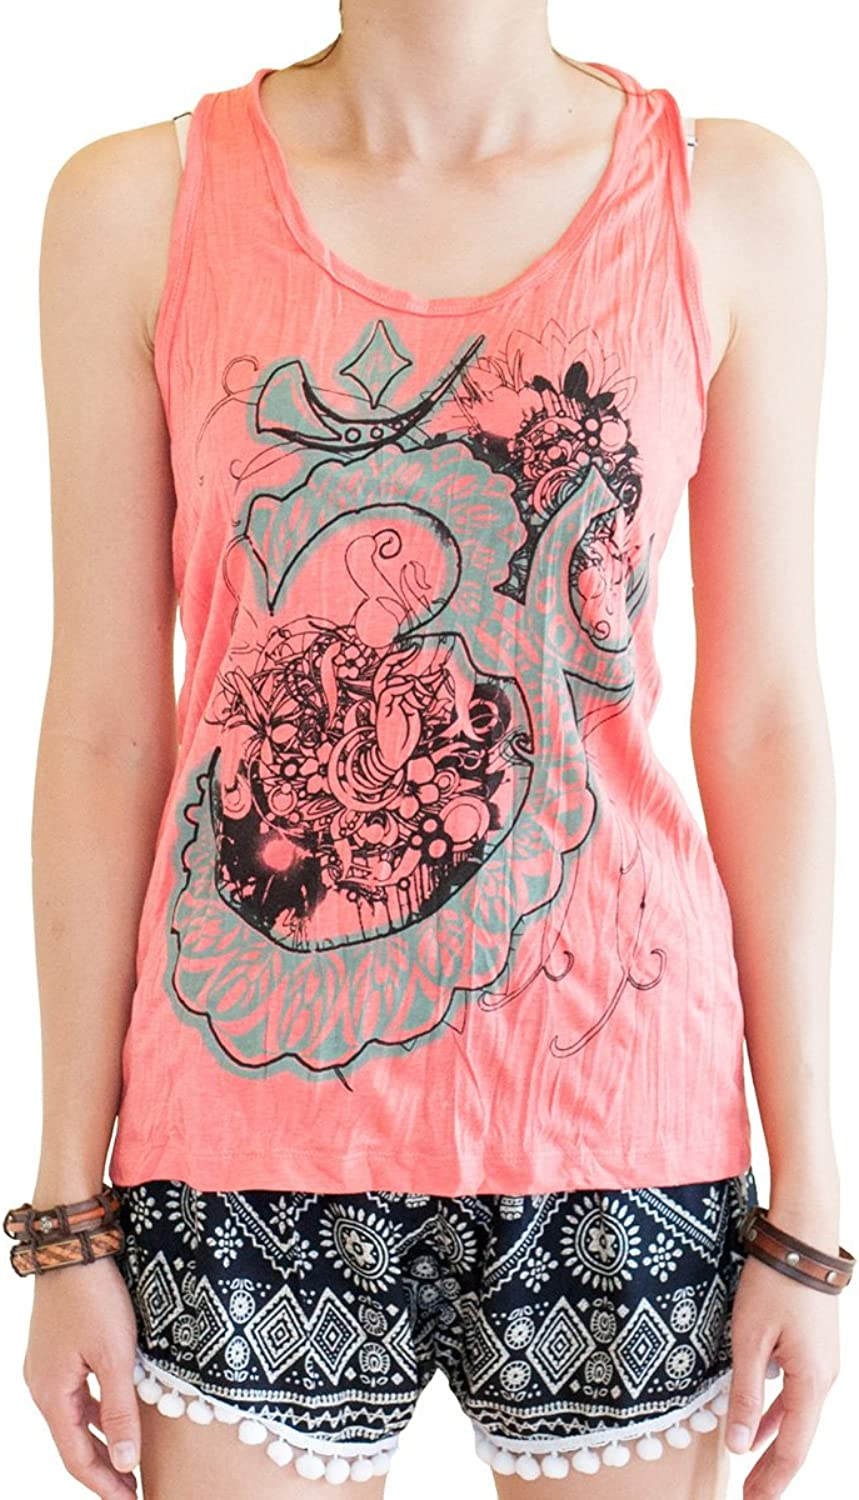 BohoHill Women's Yoga Shirt Om Flower Casual Tank Top Vest Coral Pink